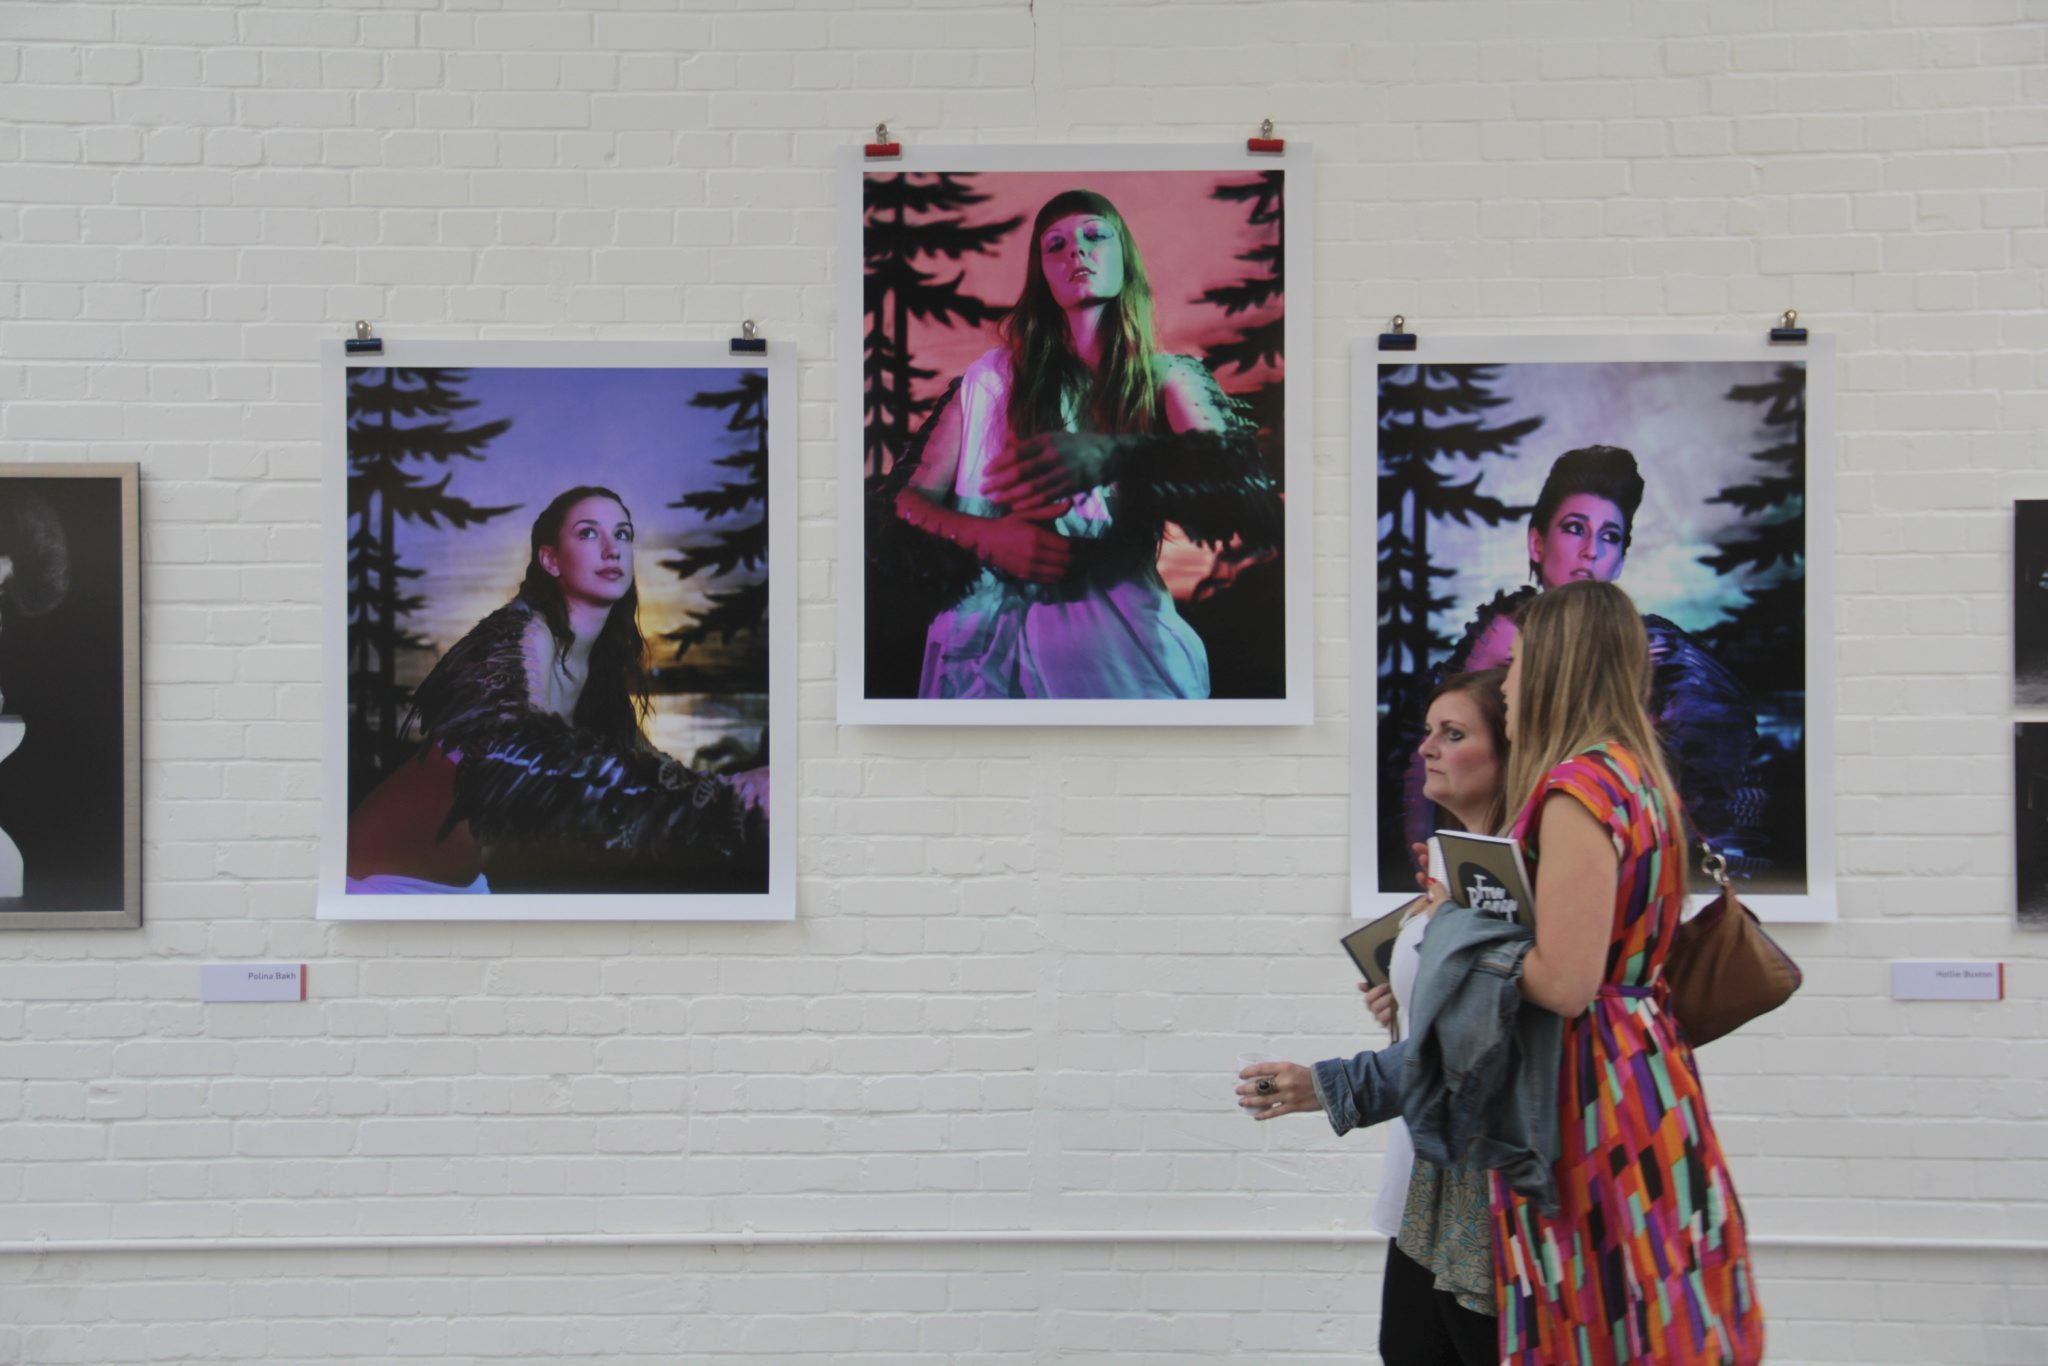 London art college degree shows